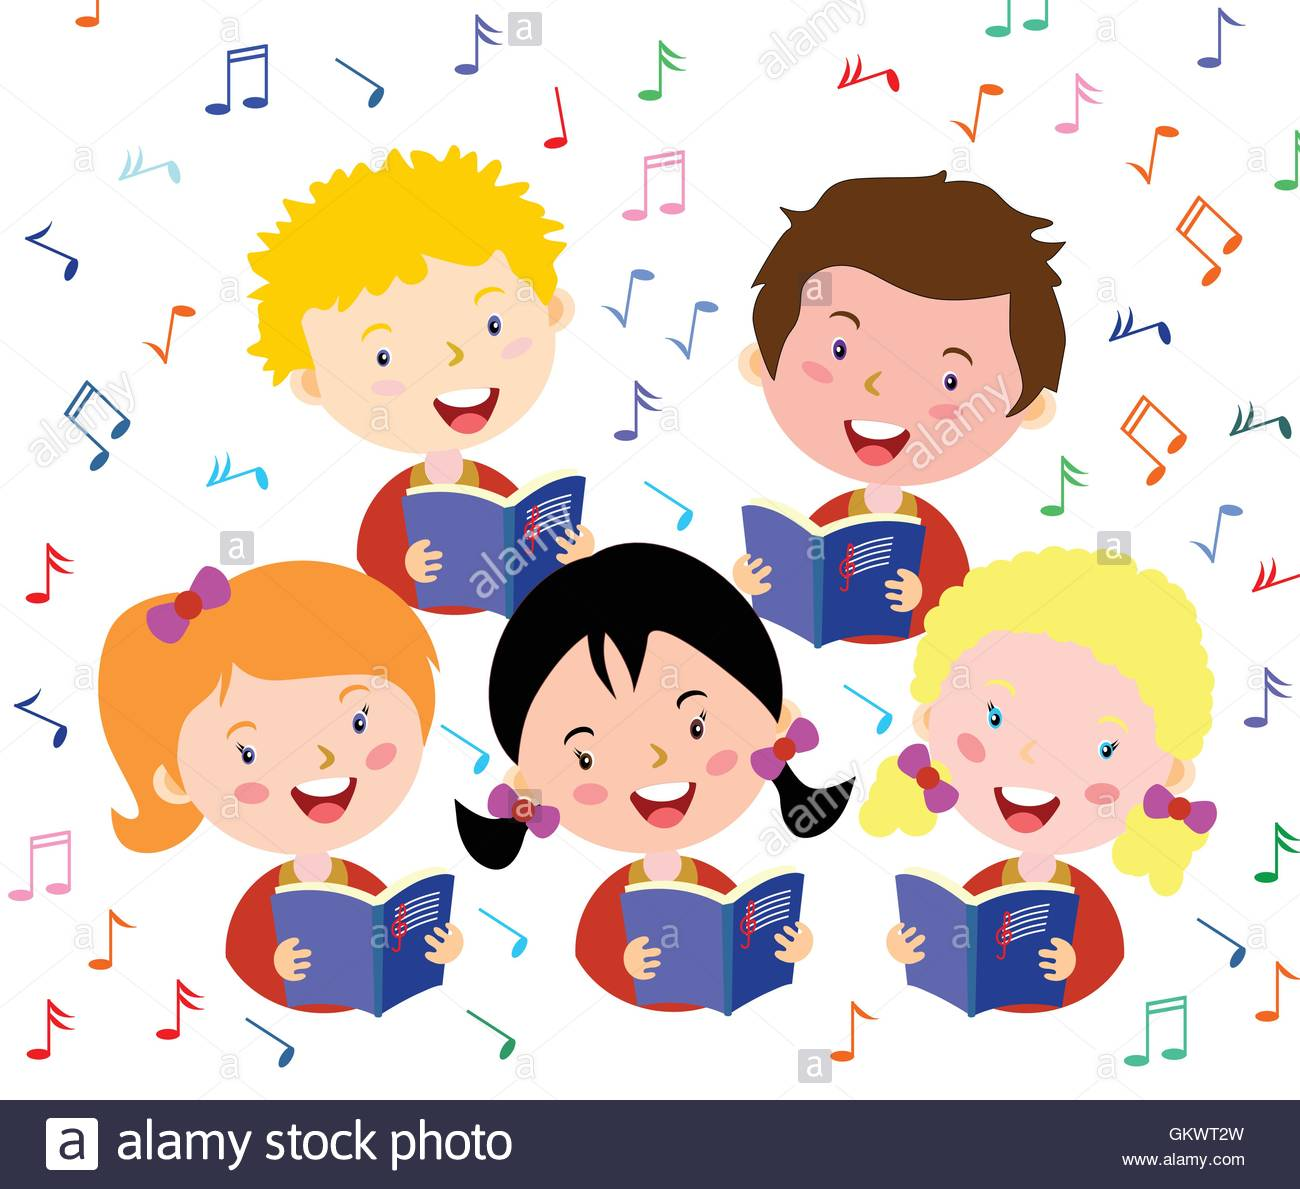 Children choir. Kids choir singing Stock Vector Art & Illustration.